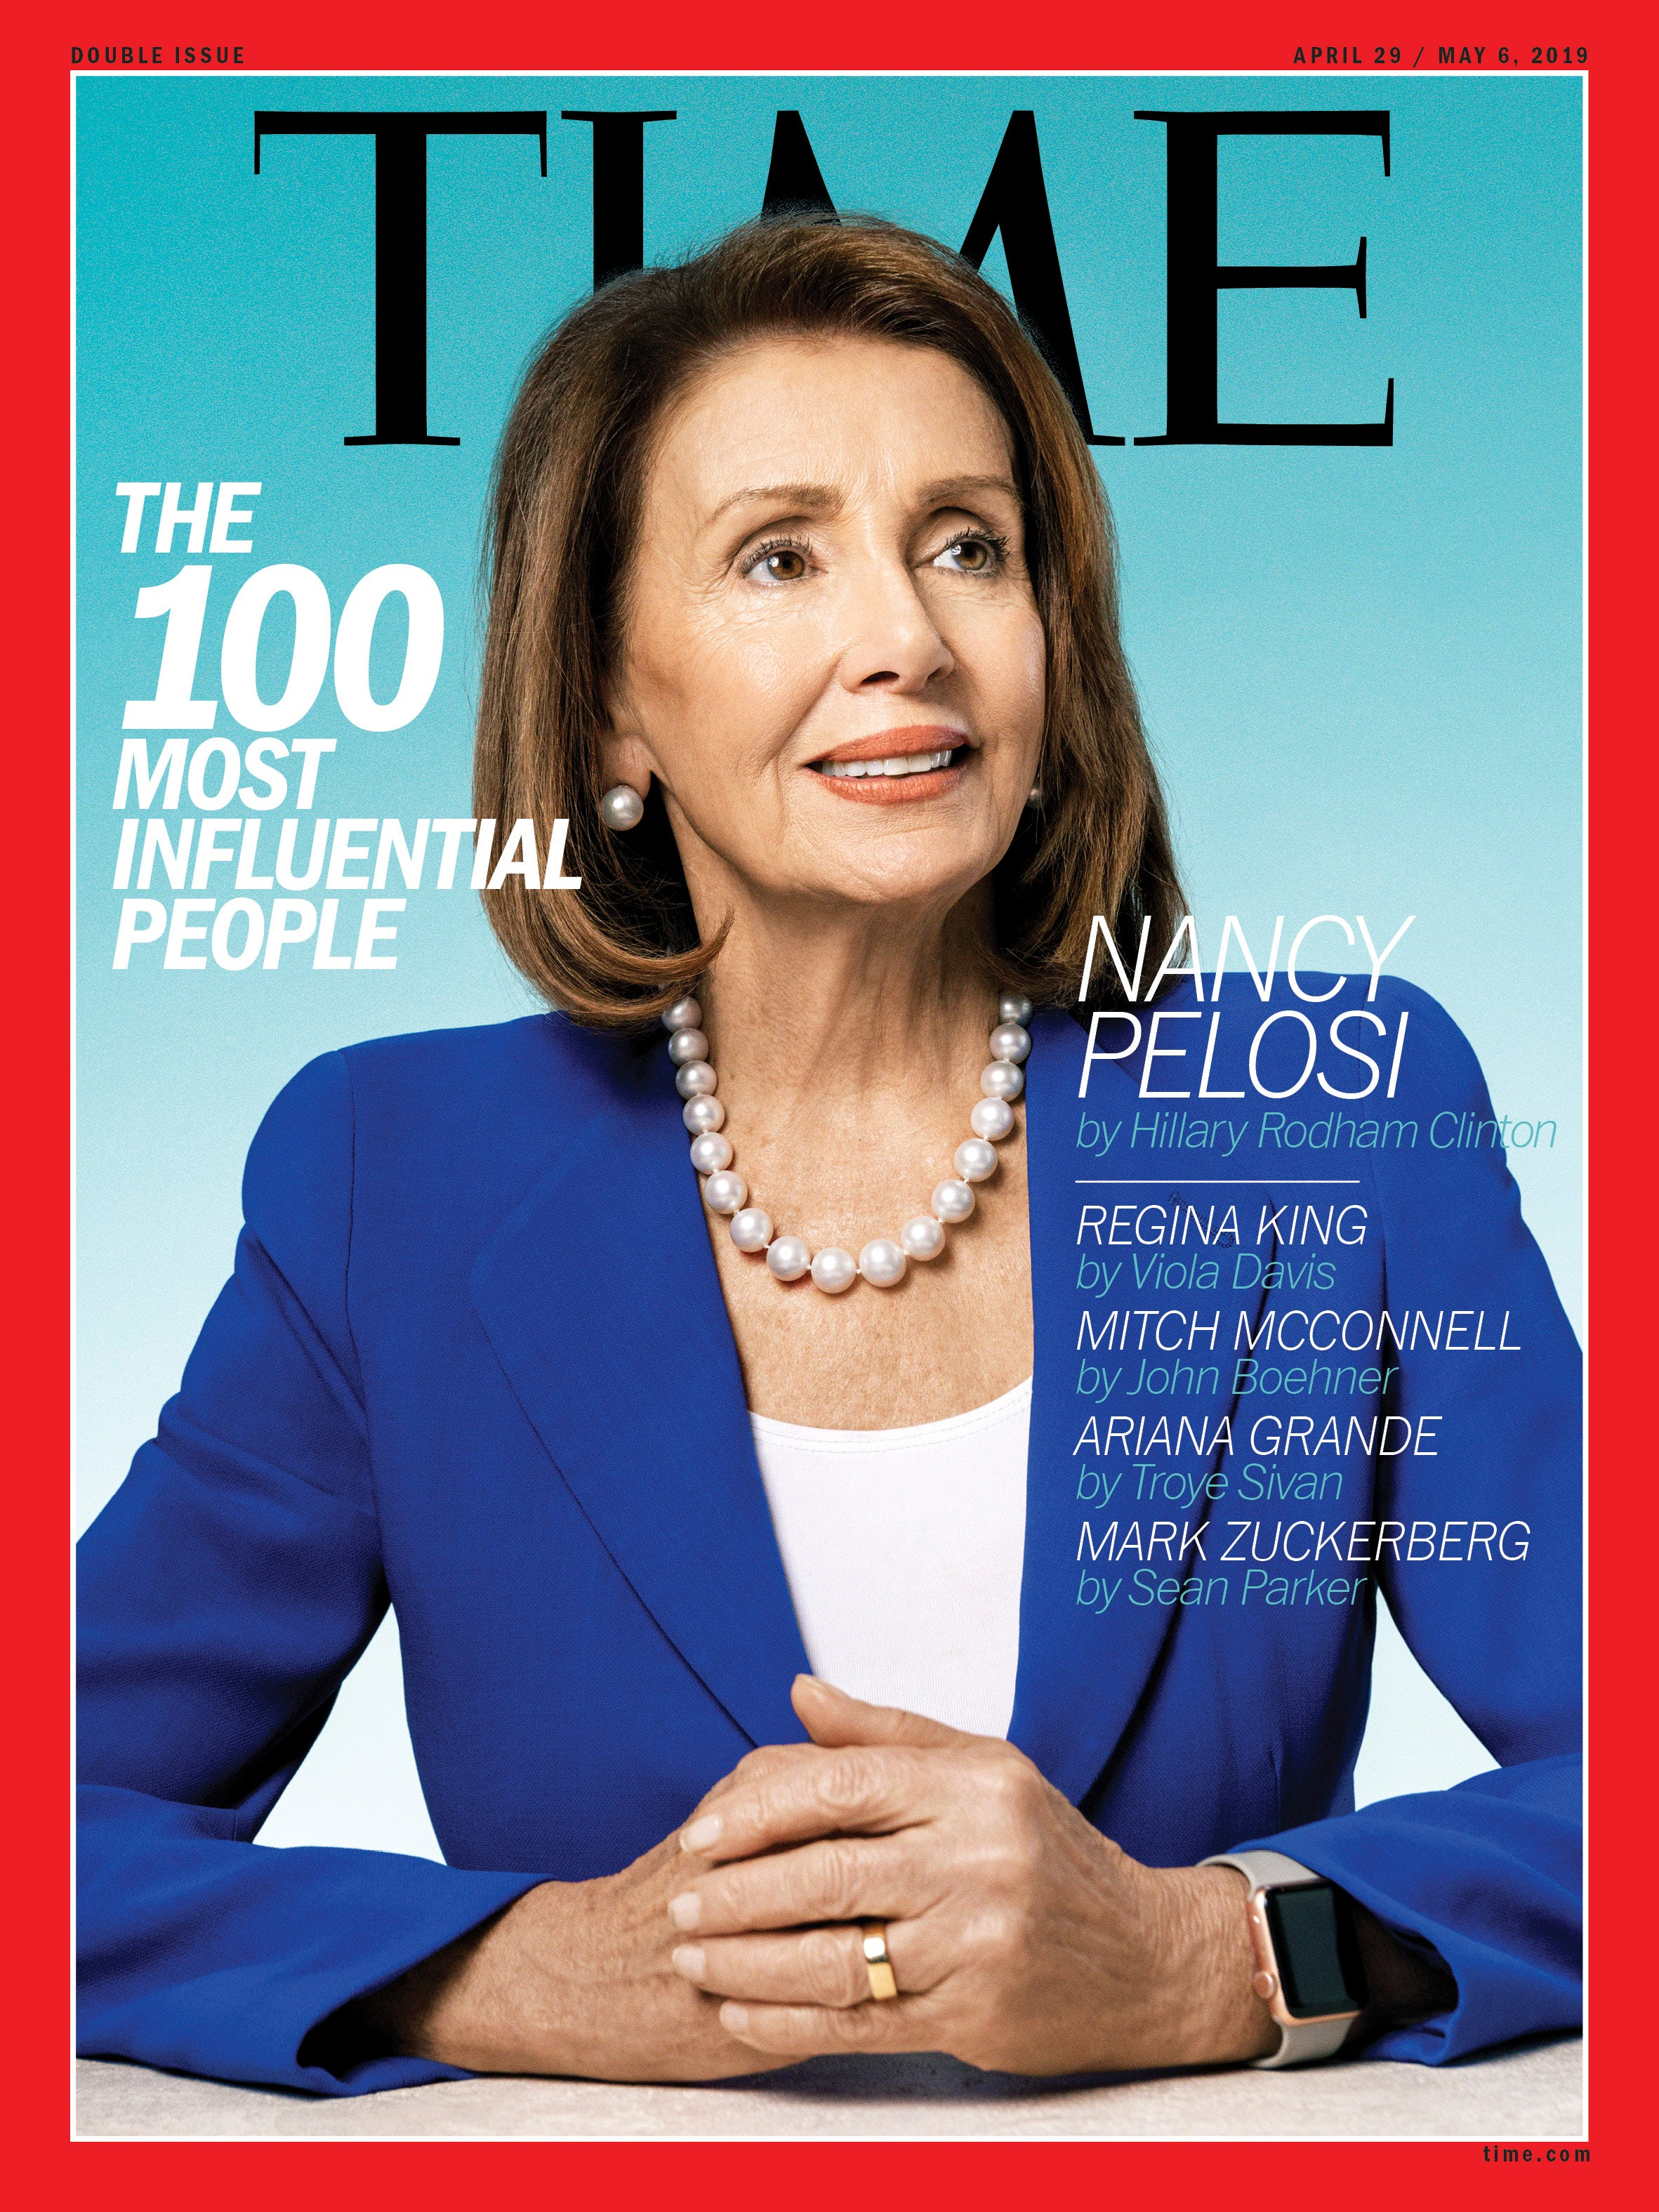 Speaker of the House of Representatives Nancy Pelosi